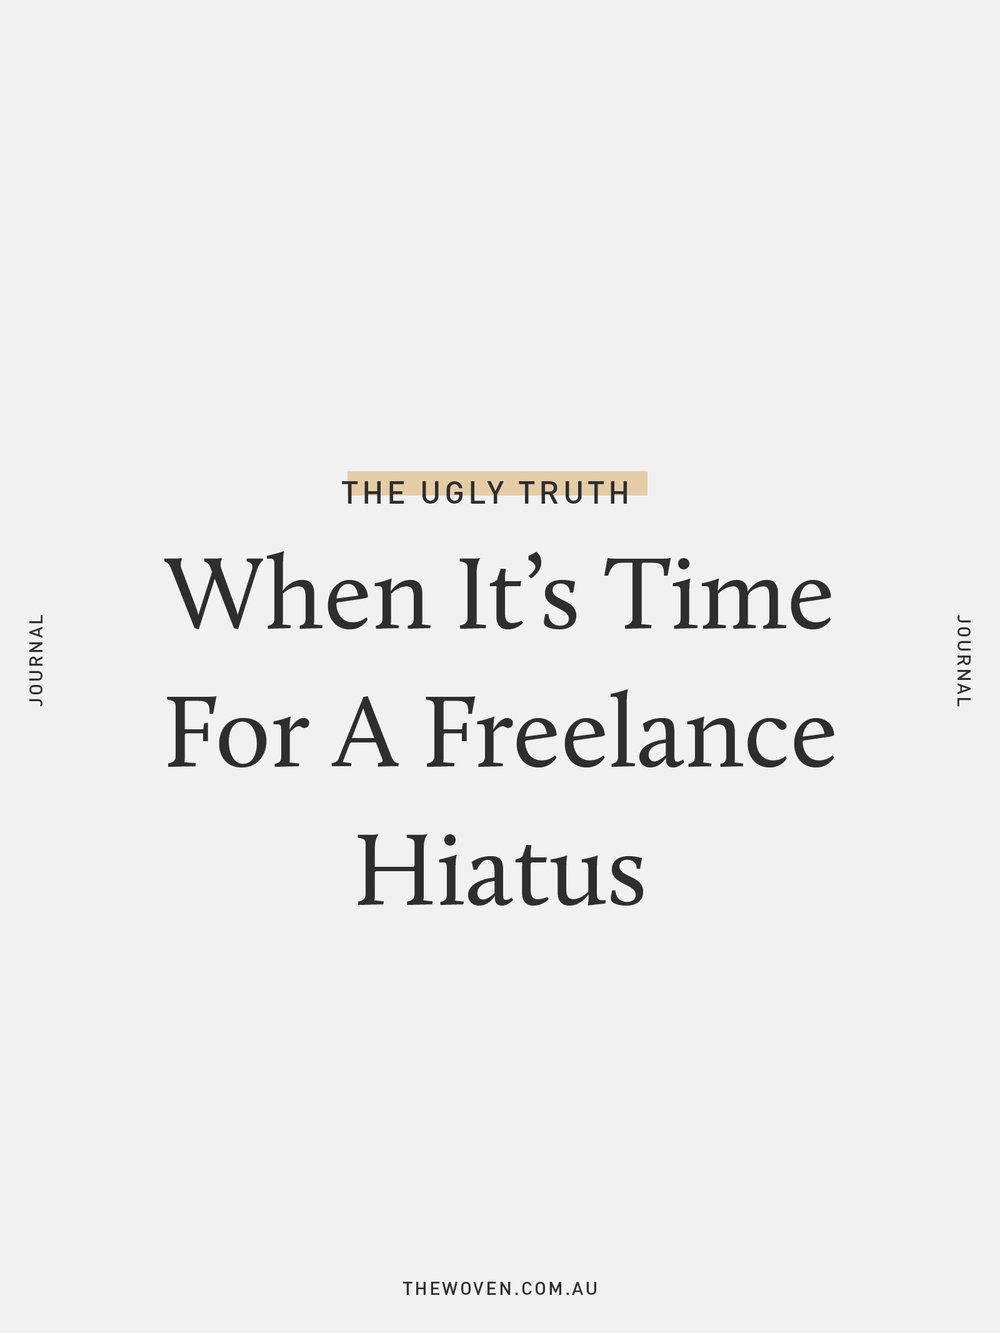 When it's time for a freelance hiatus